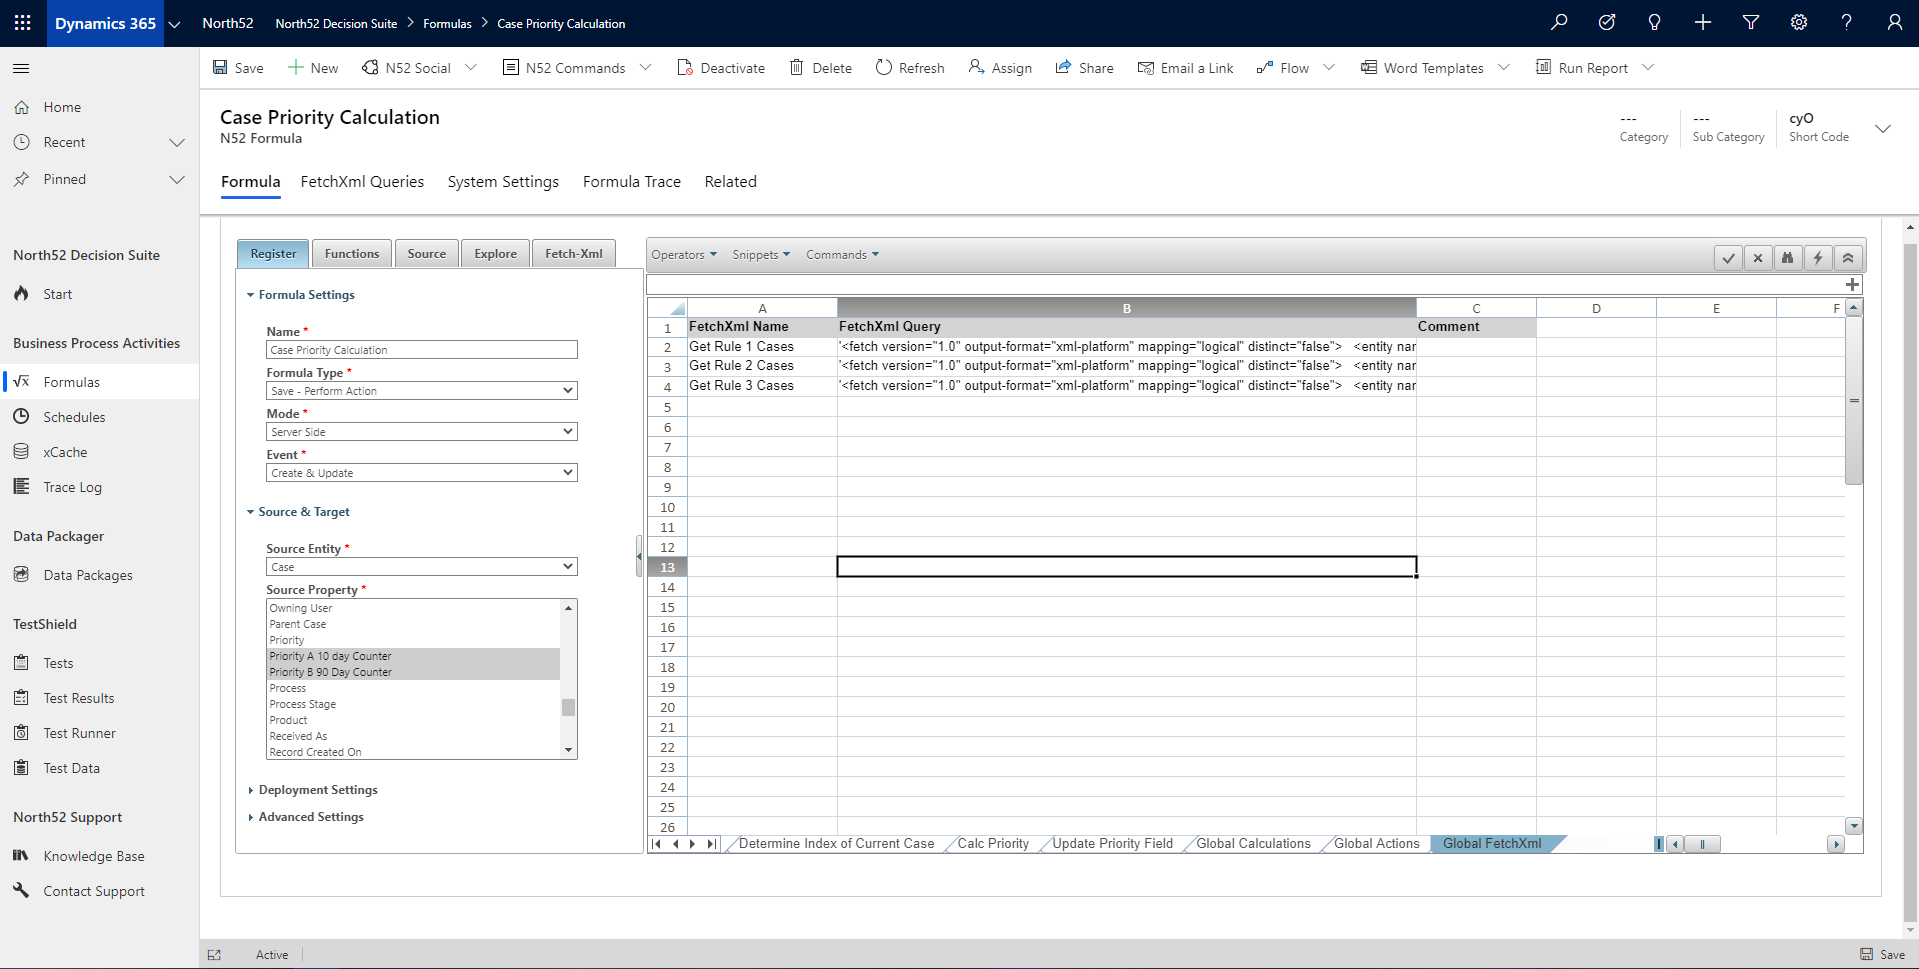 FetchXml Decision Table - North52 Business Rules Engine for Dynamics 365